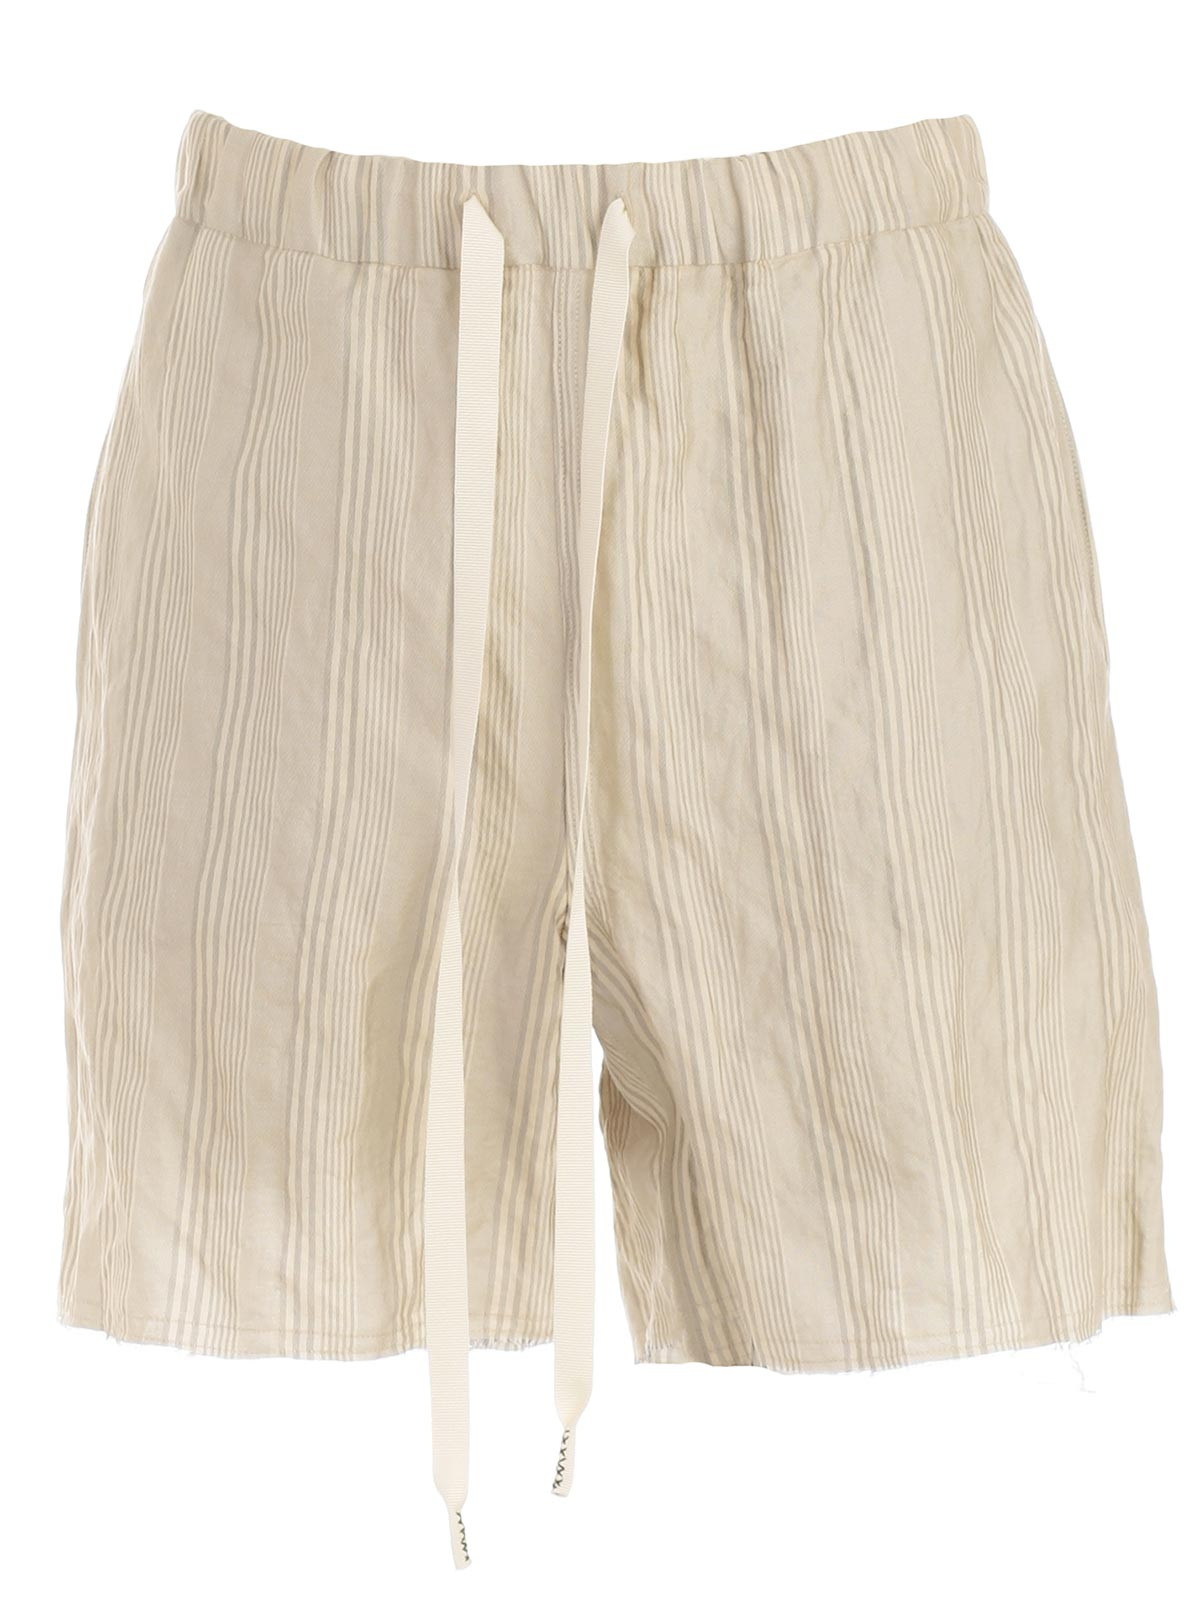 Picture of Federico Curradi Trousers